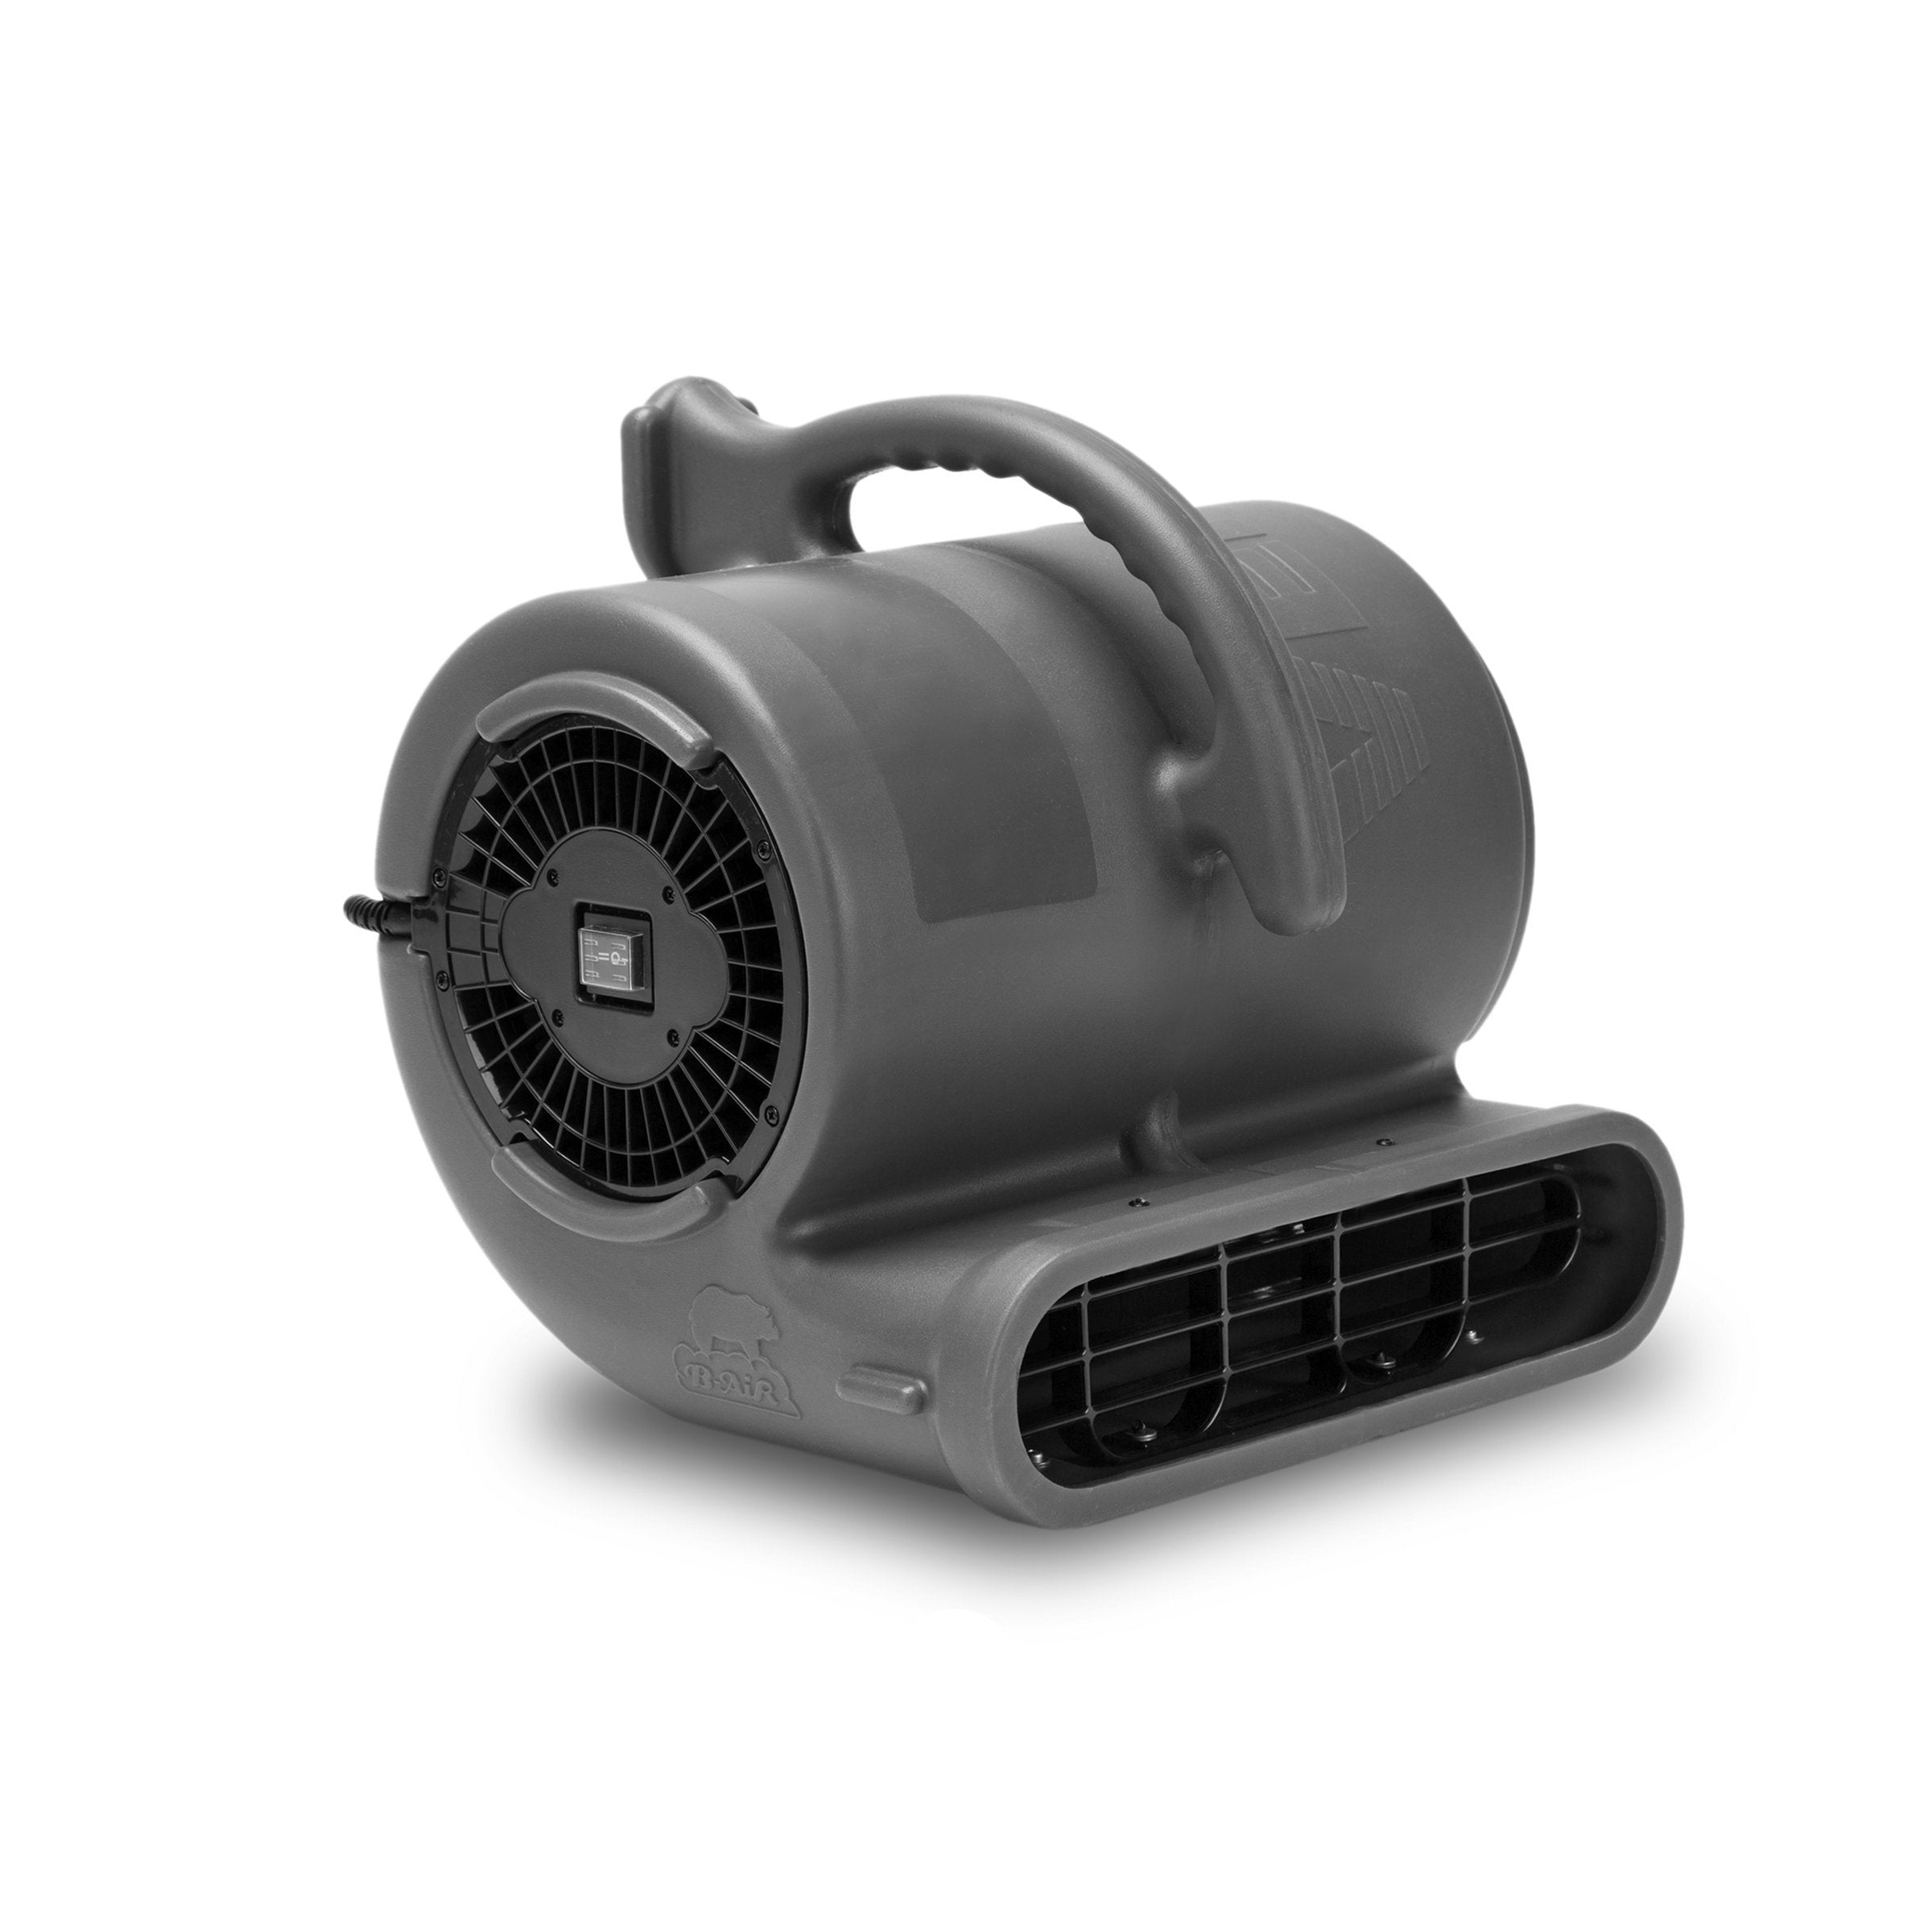 B-Air 1/2 HP Vent VP-50 Dyno Blower Fan